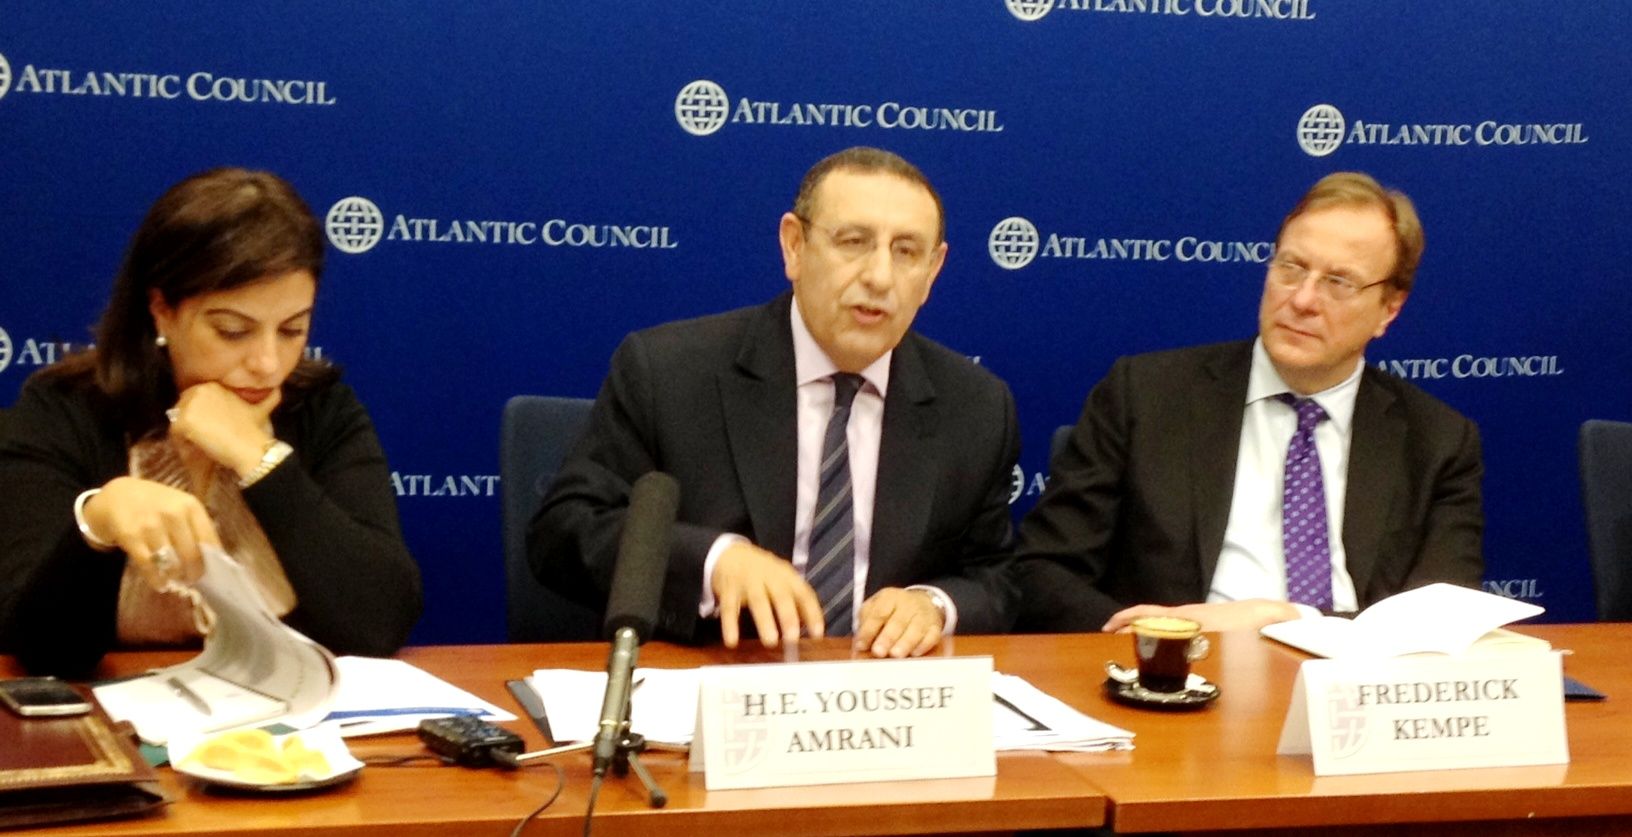 Morocco's Minister Delegate of Foreign Affairs, Youssef Amrani, spoke at the Atlantic Council in Washington, DC on December 3